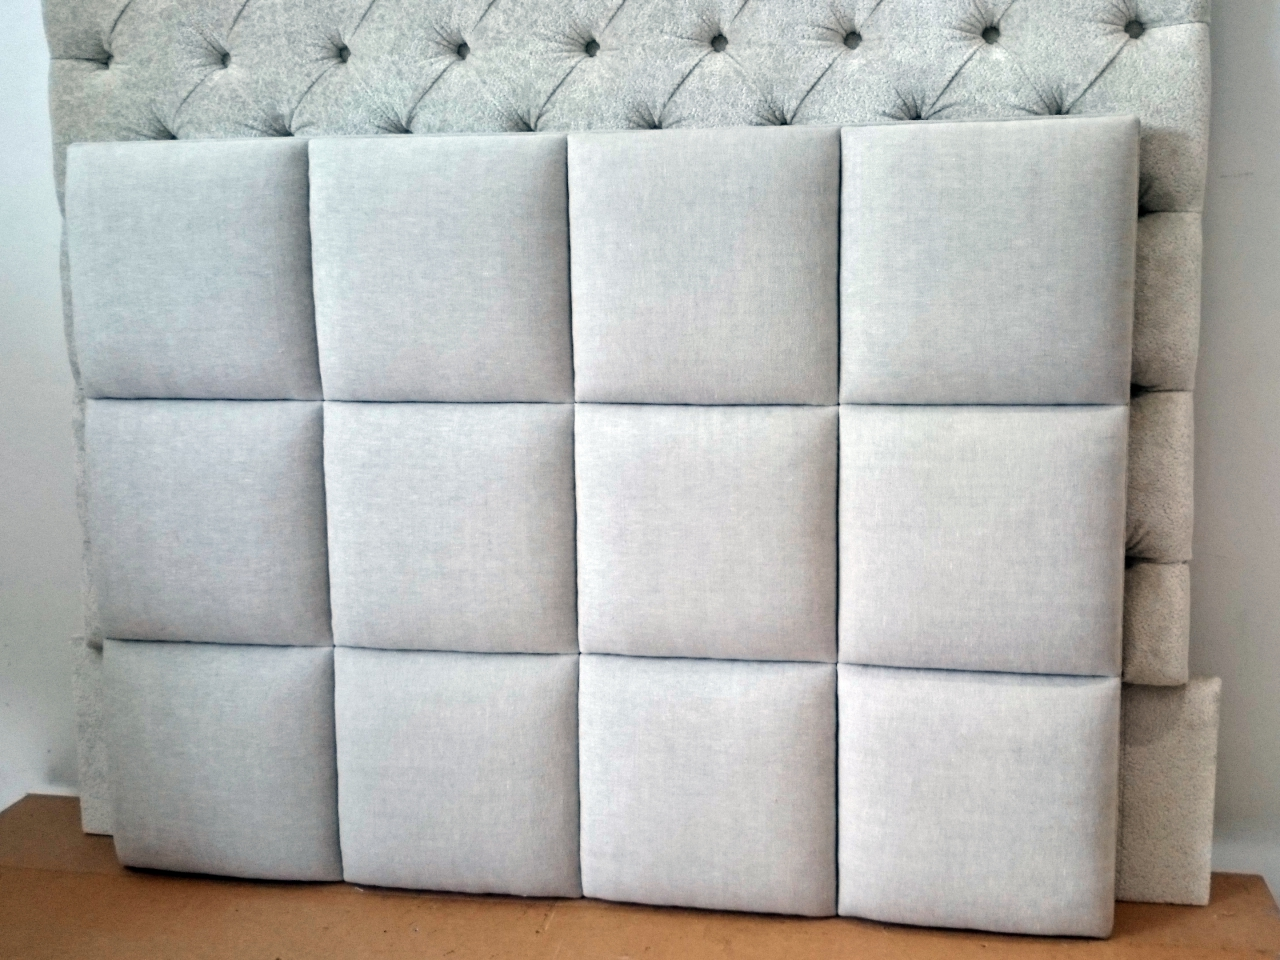 Are You Looking For Tufted Padded Art Deco Silk Suede Leather Headboard Or Wall Panel We Can Make It Also Reupholster Furniture To